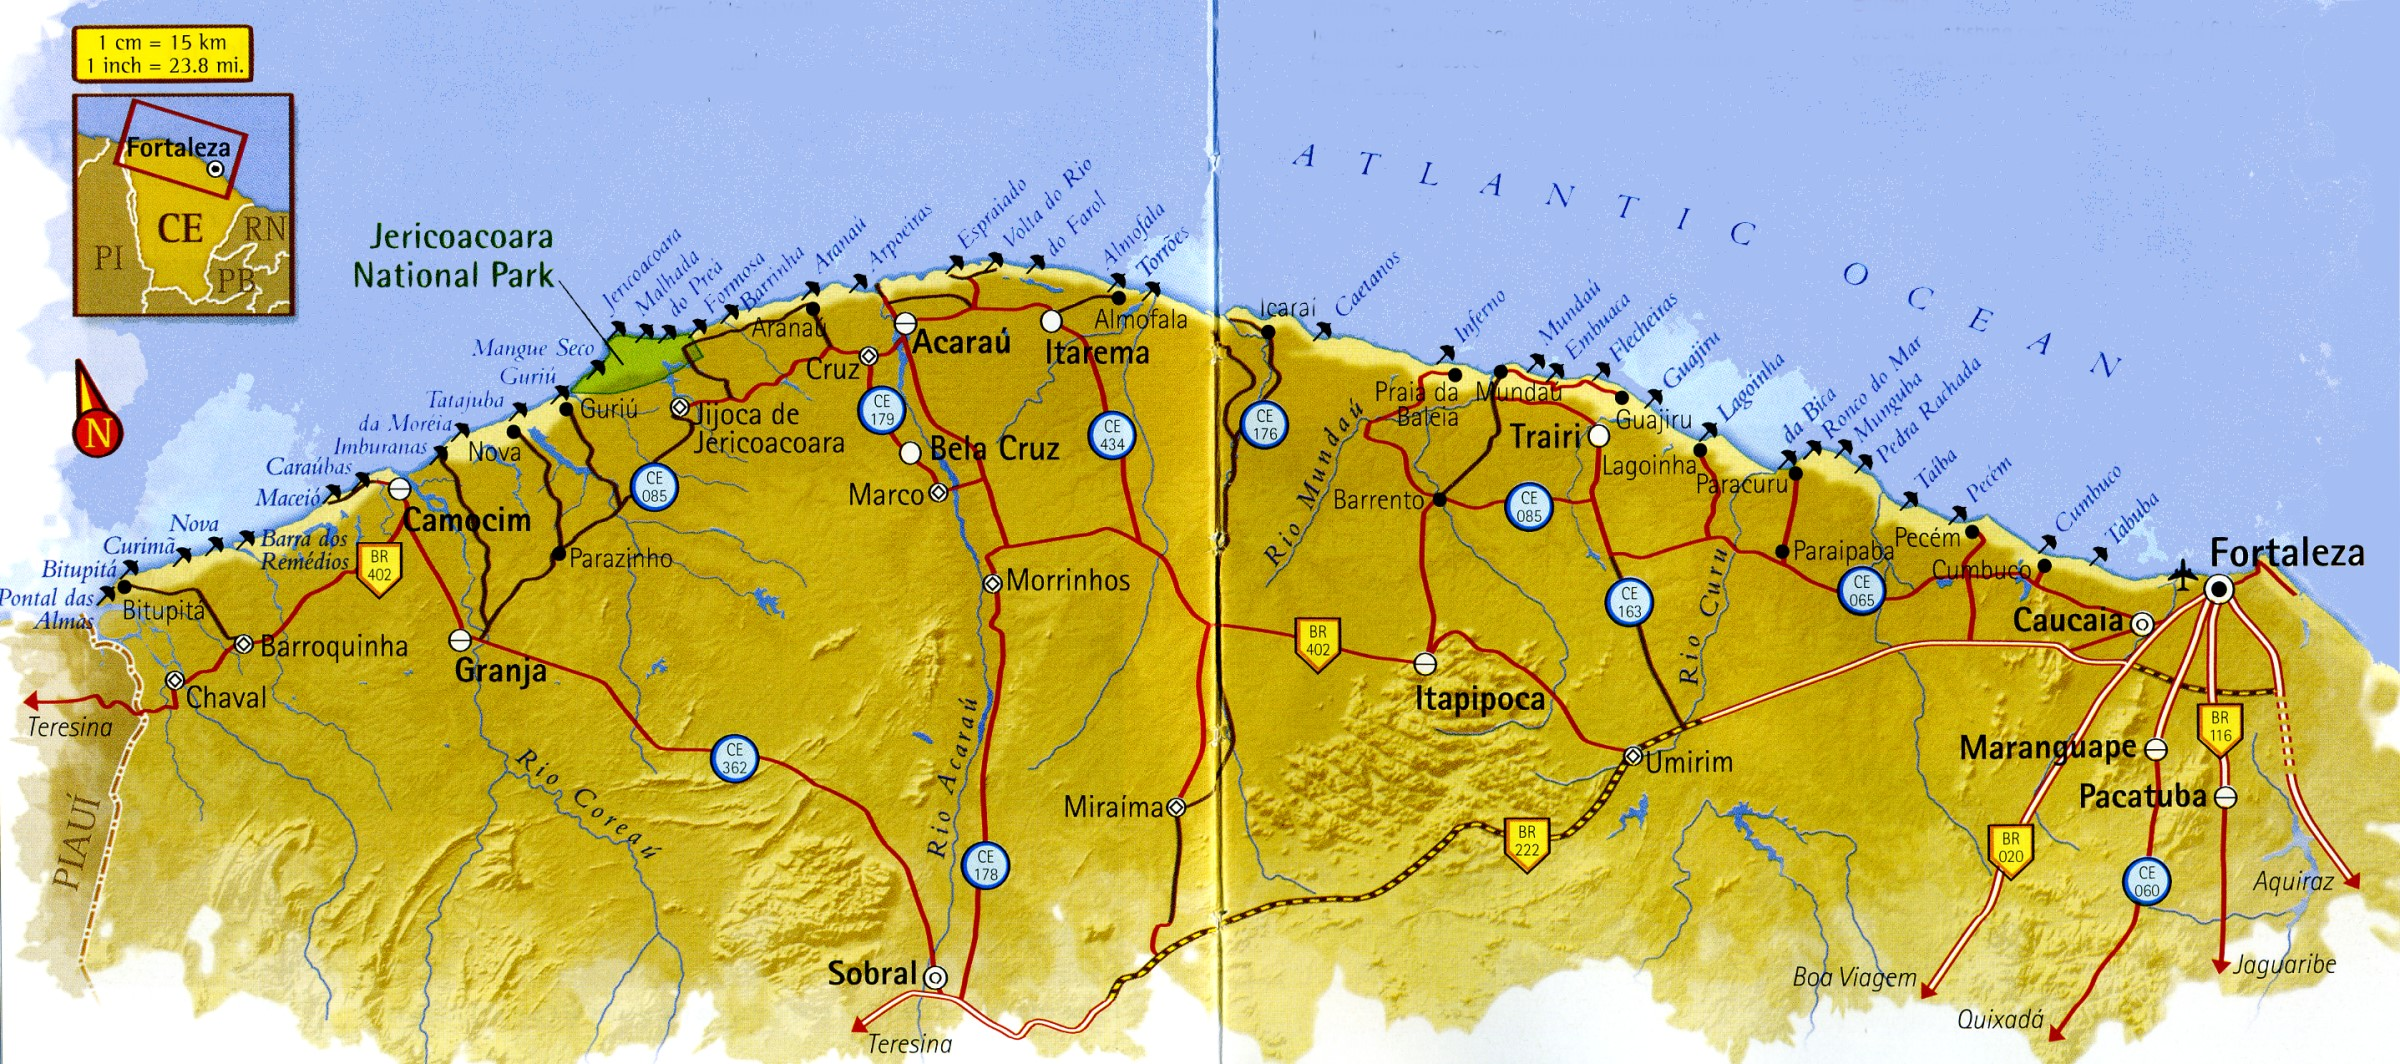 Map of Ceará West Coast Brazil